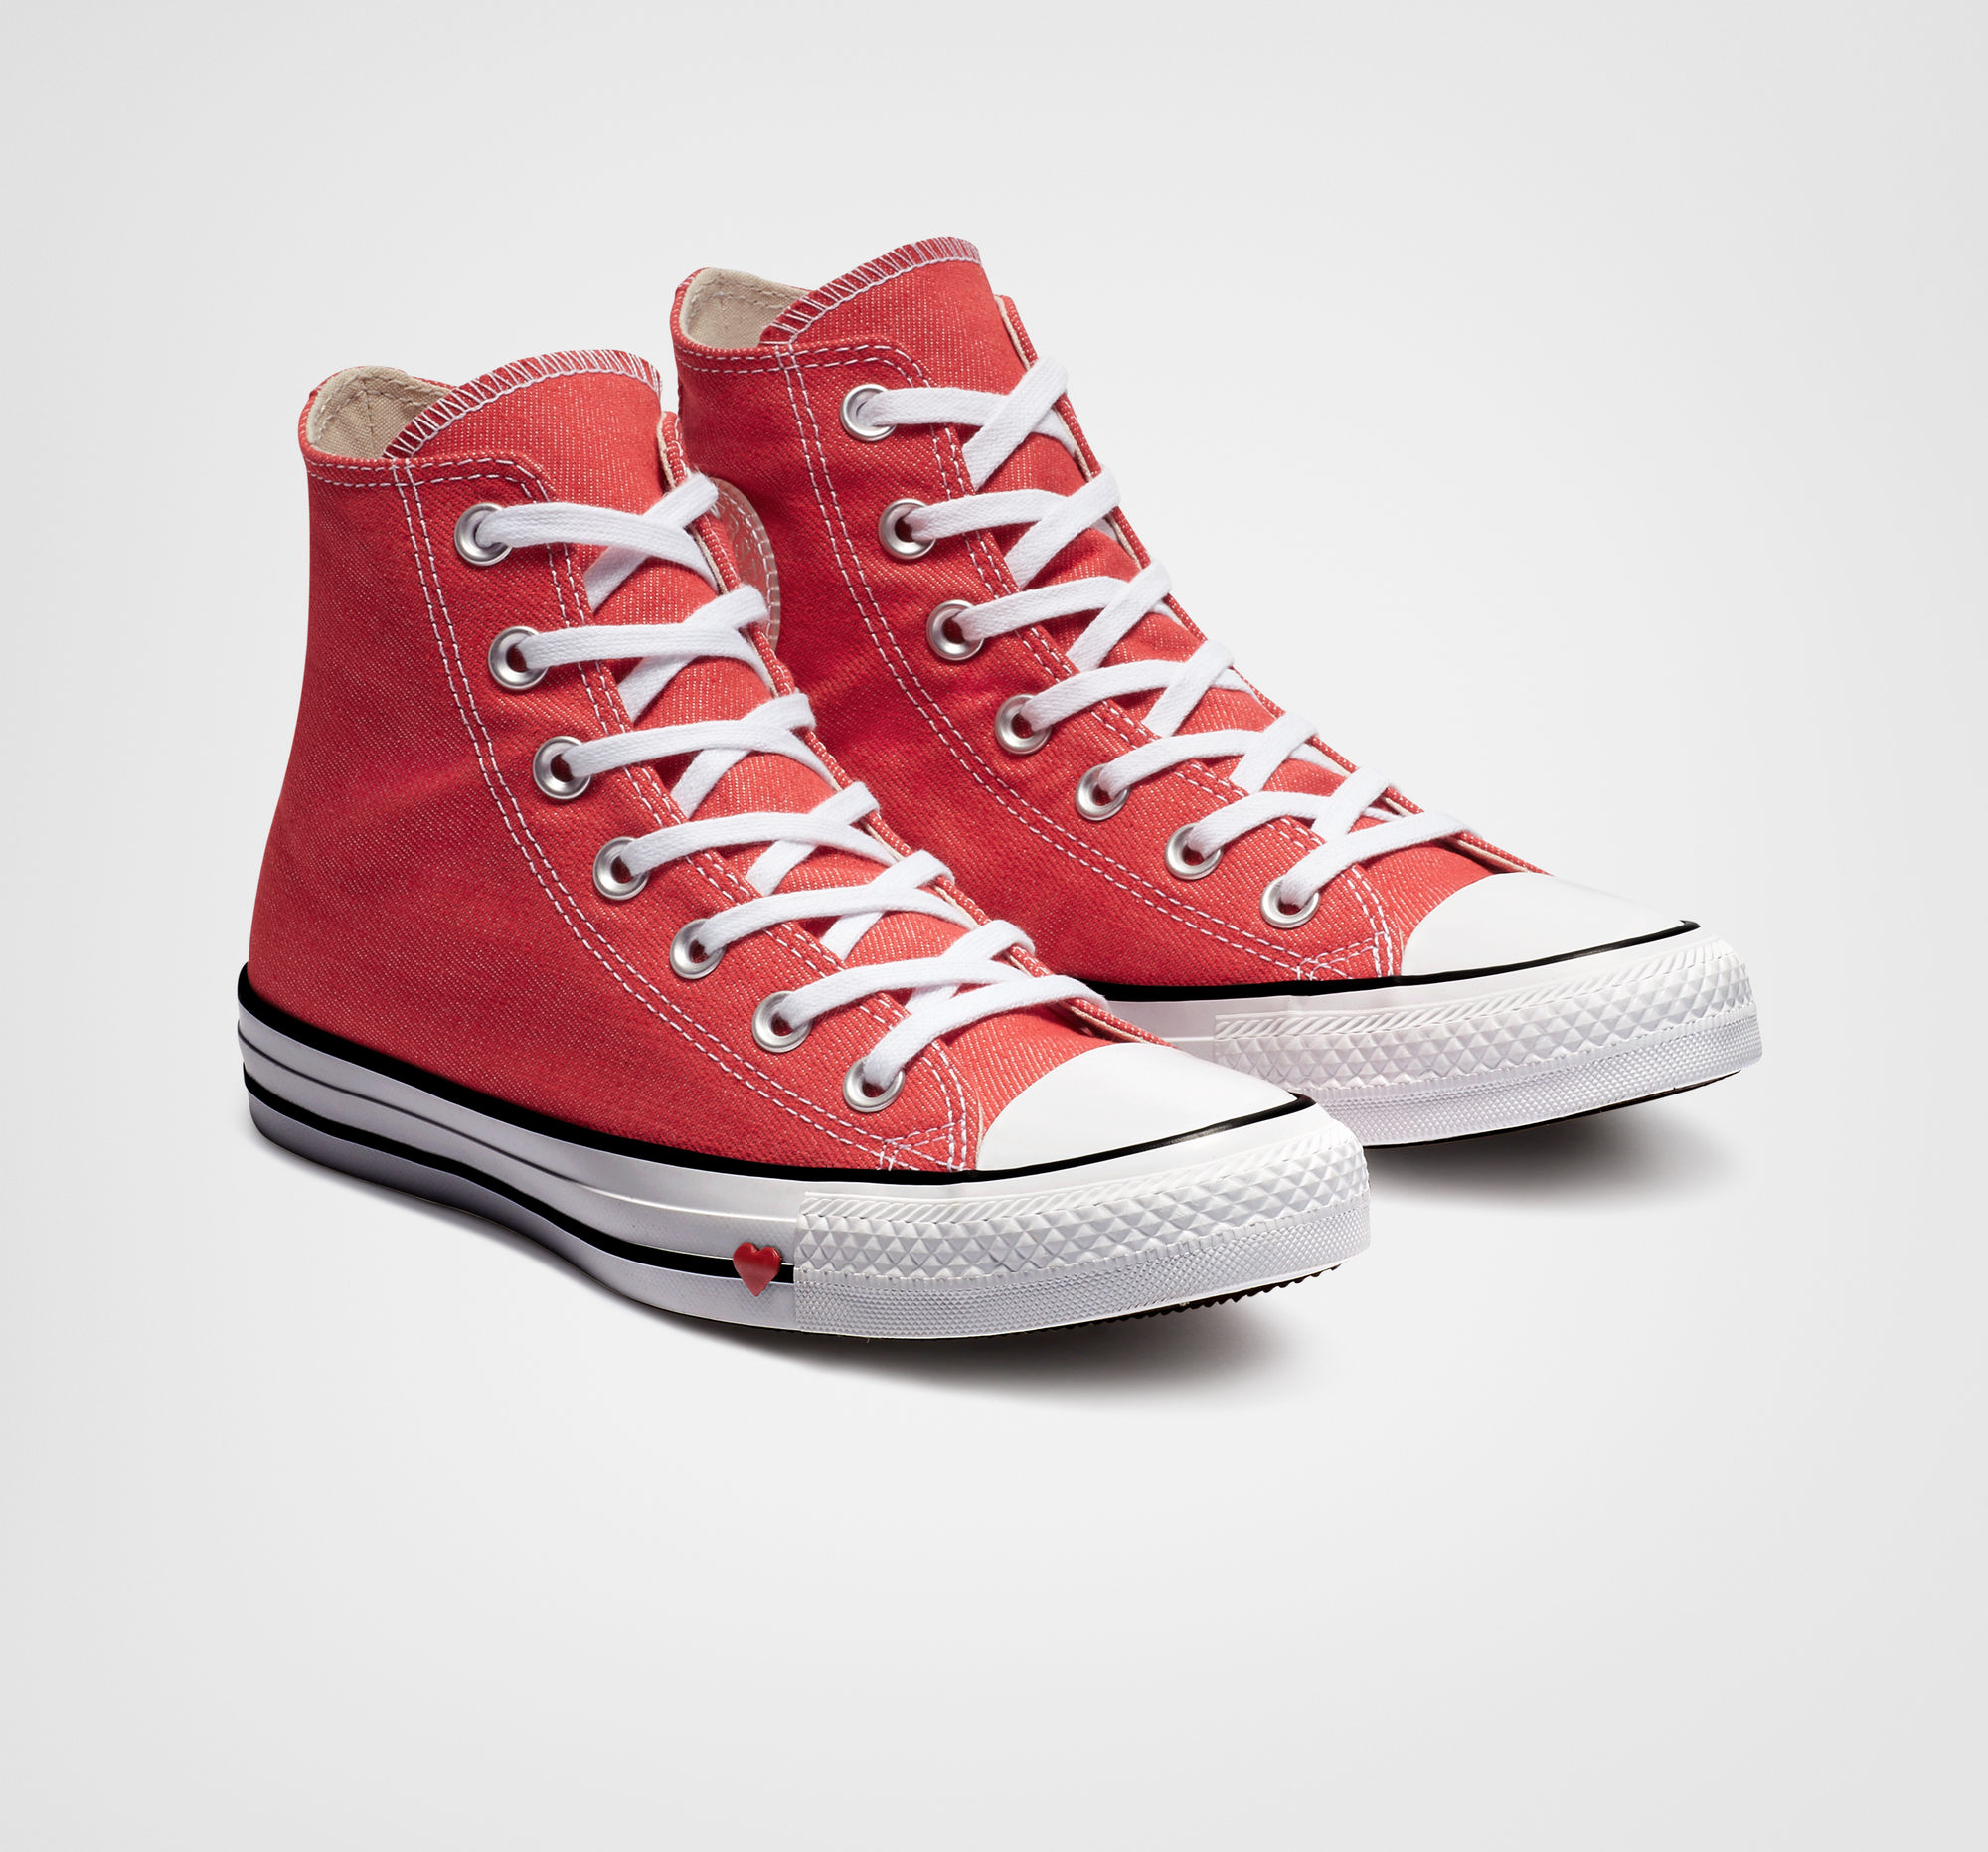 Chuck Taylor All Star Denim Love High Top in Sedona Red/Black/White